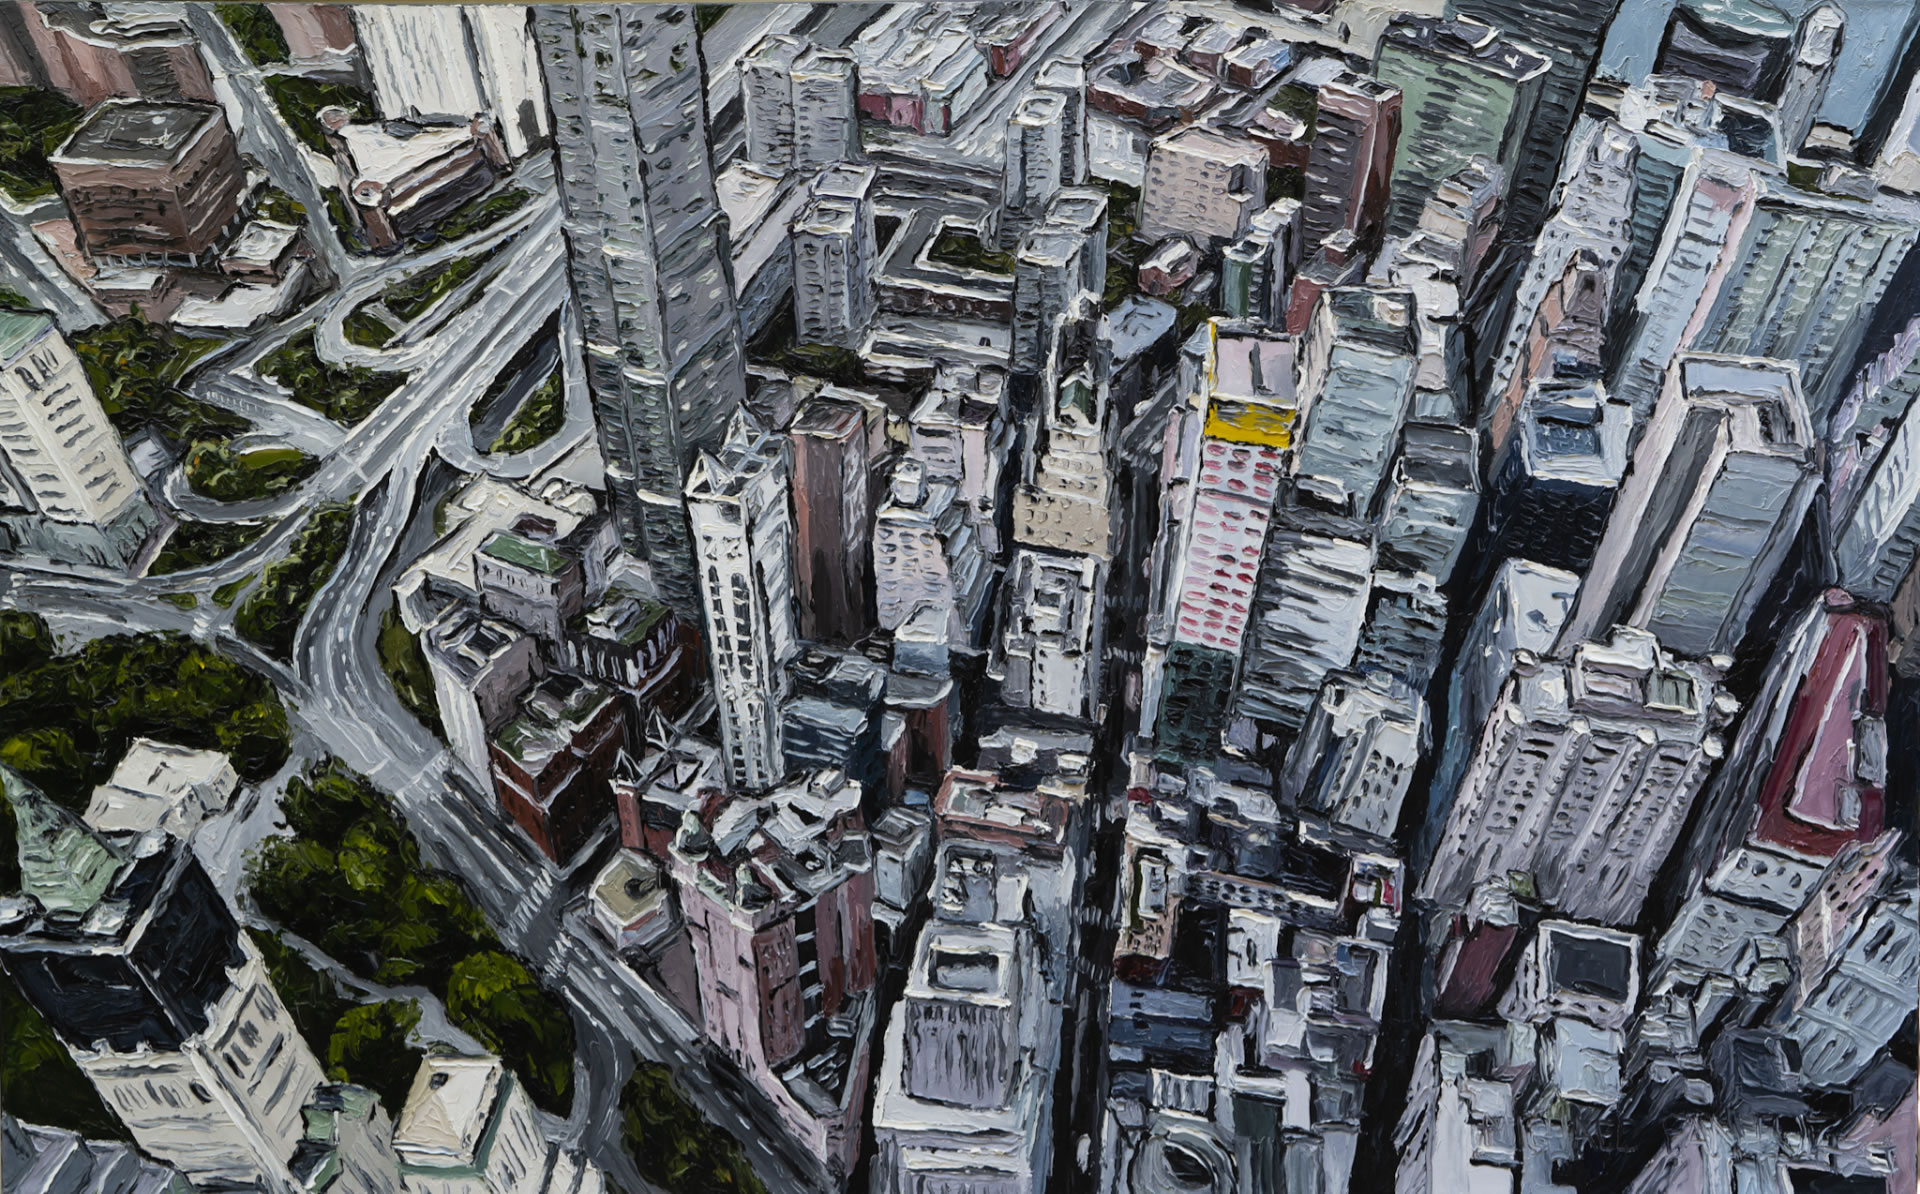 Mike-Fantuz-Broadway-and-Fulton-2020-oil-on-canvas-30x48-3900-Online-Art-Galleries